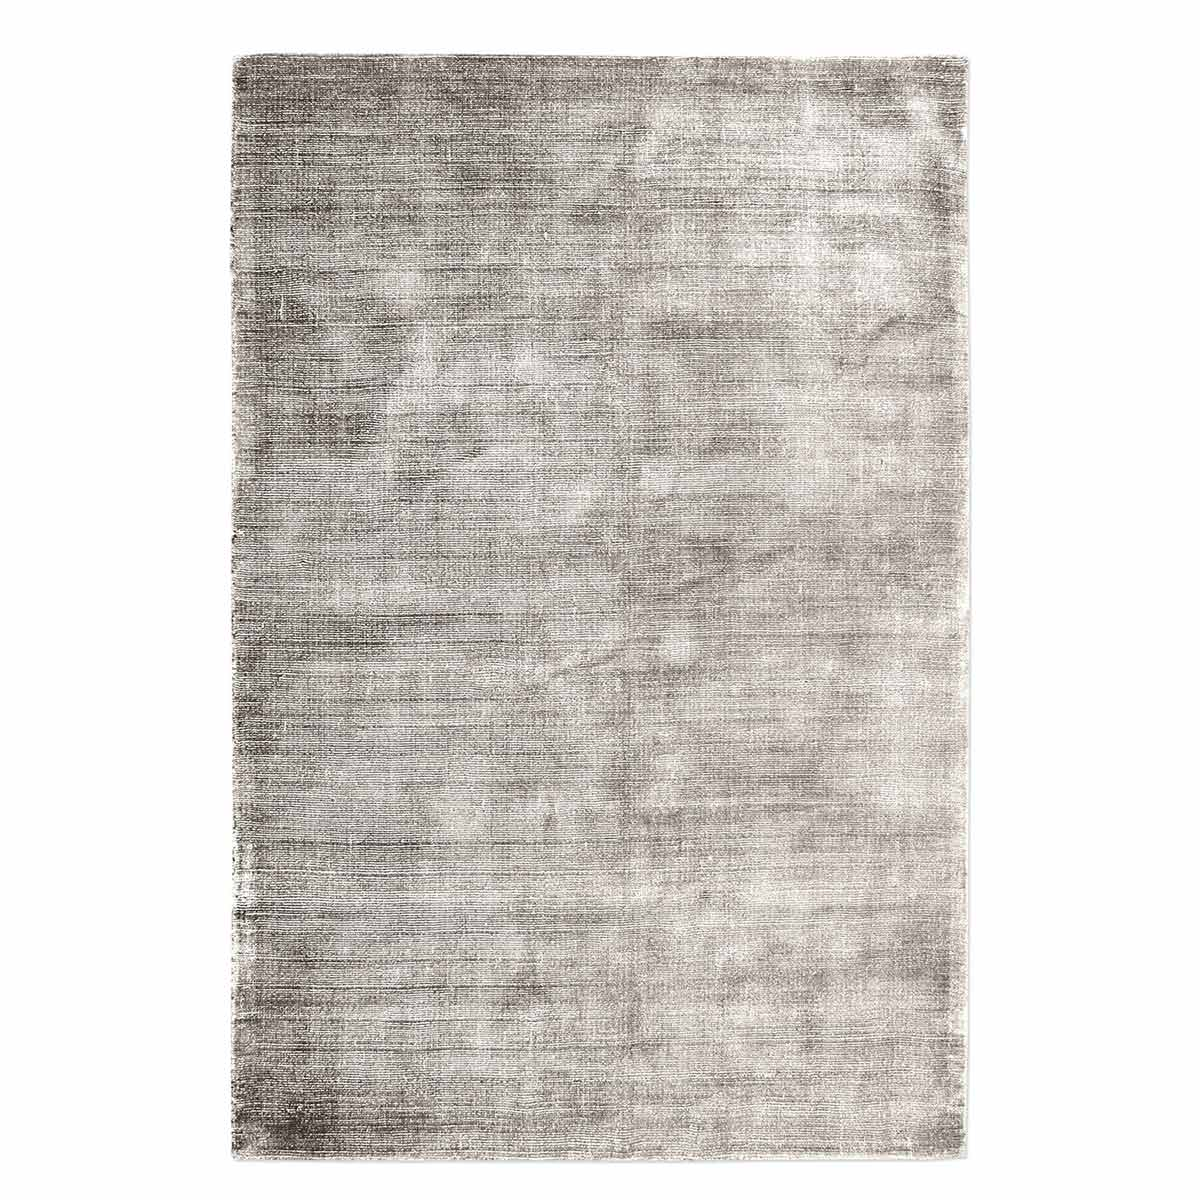 Uttermost Messini 9 x 12 Rug - Beige